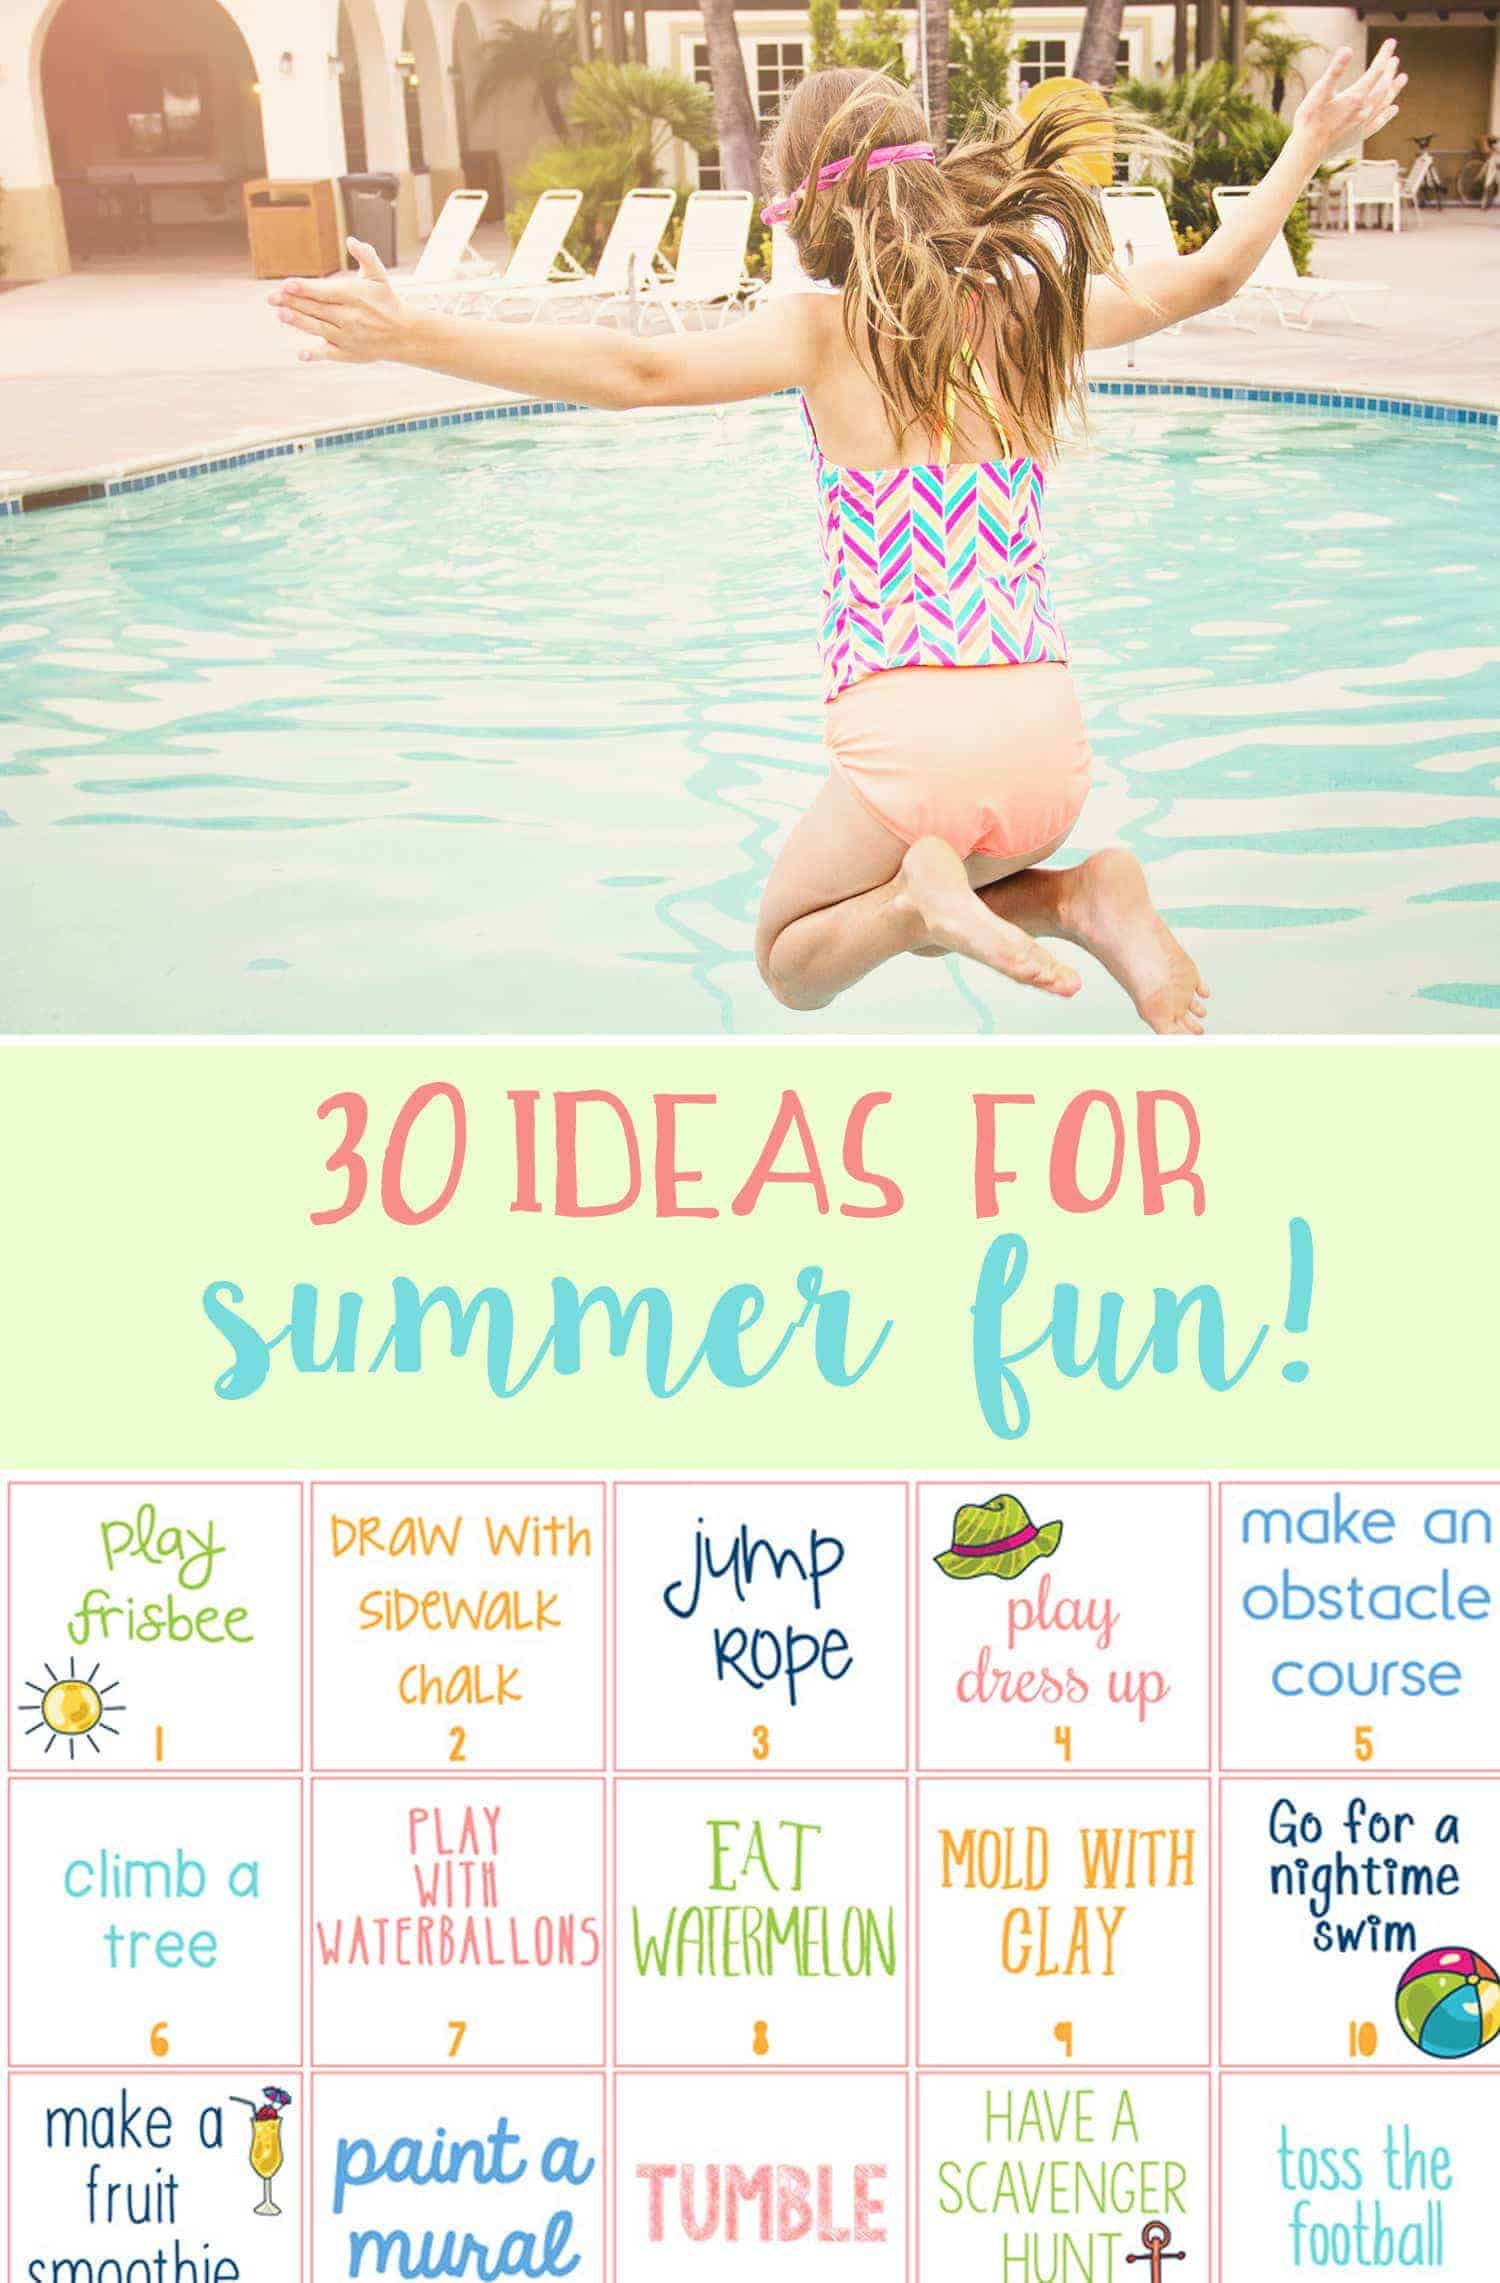 30 Days of Summer Fun ideas for the Kids!